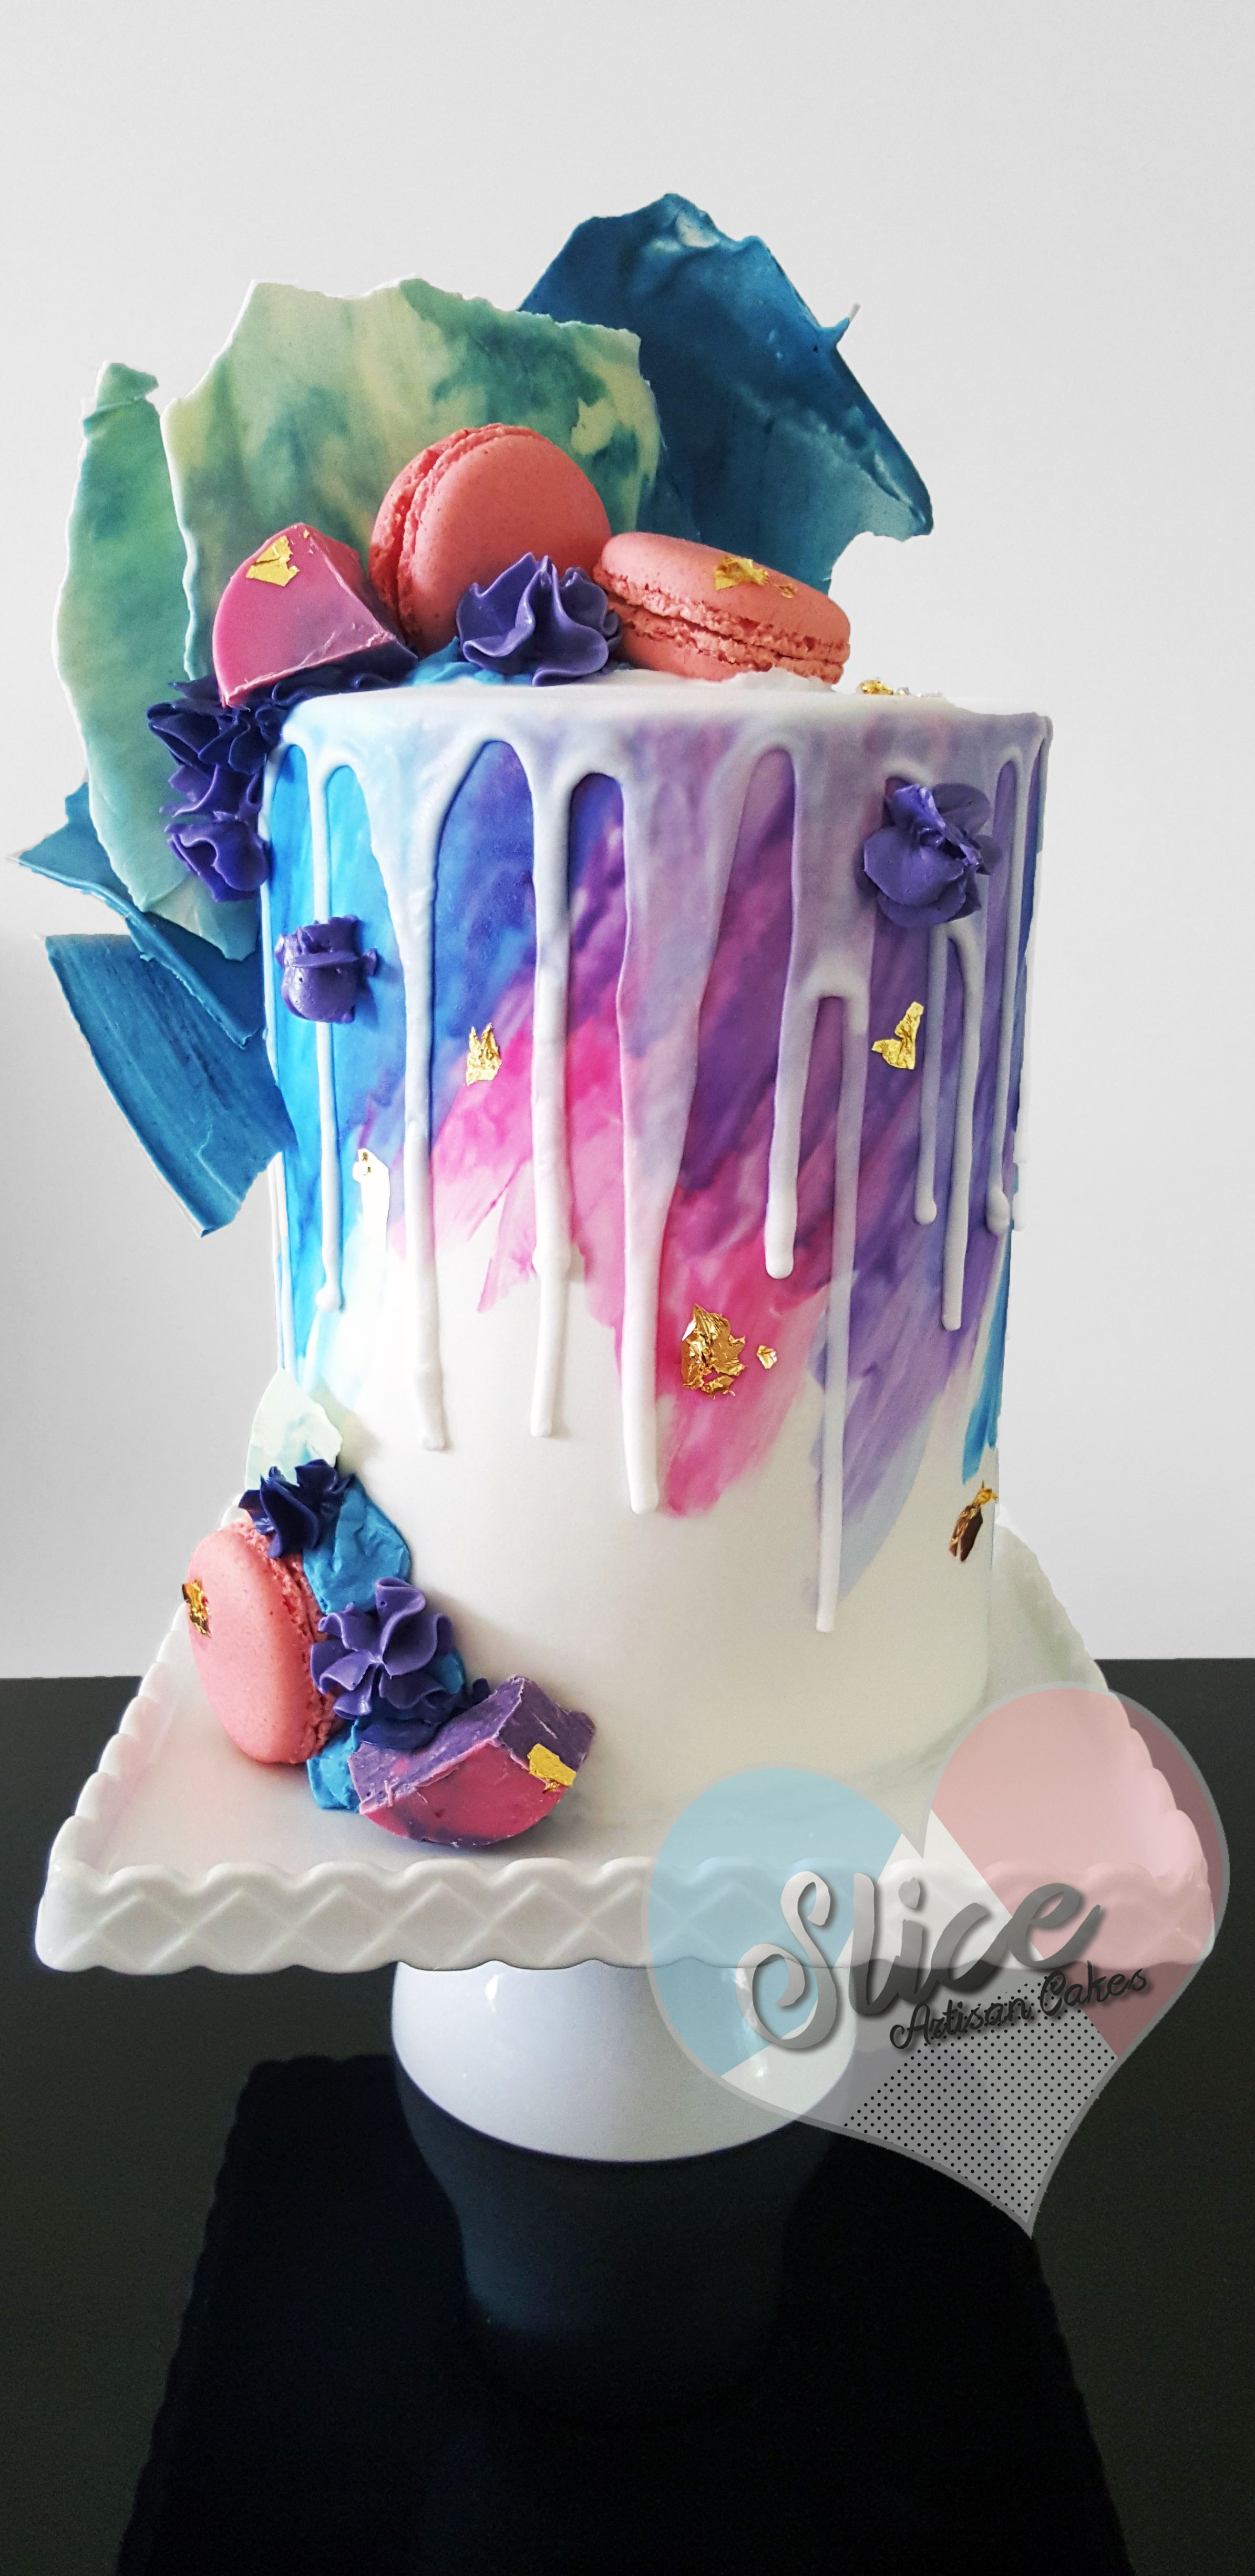 Watercolour Drip Cake Wwwslicecakescom Affordable Wedding